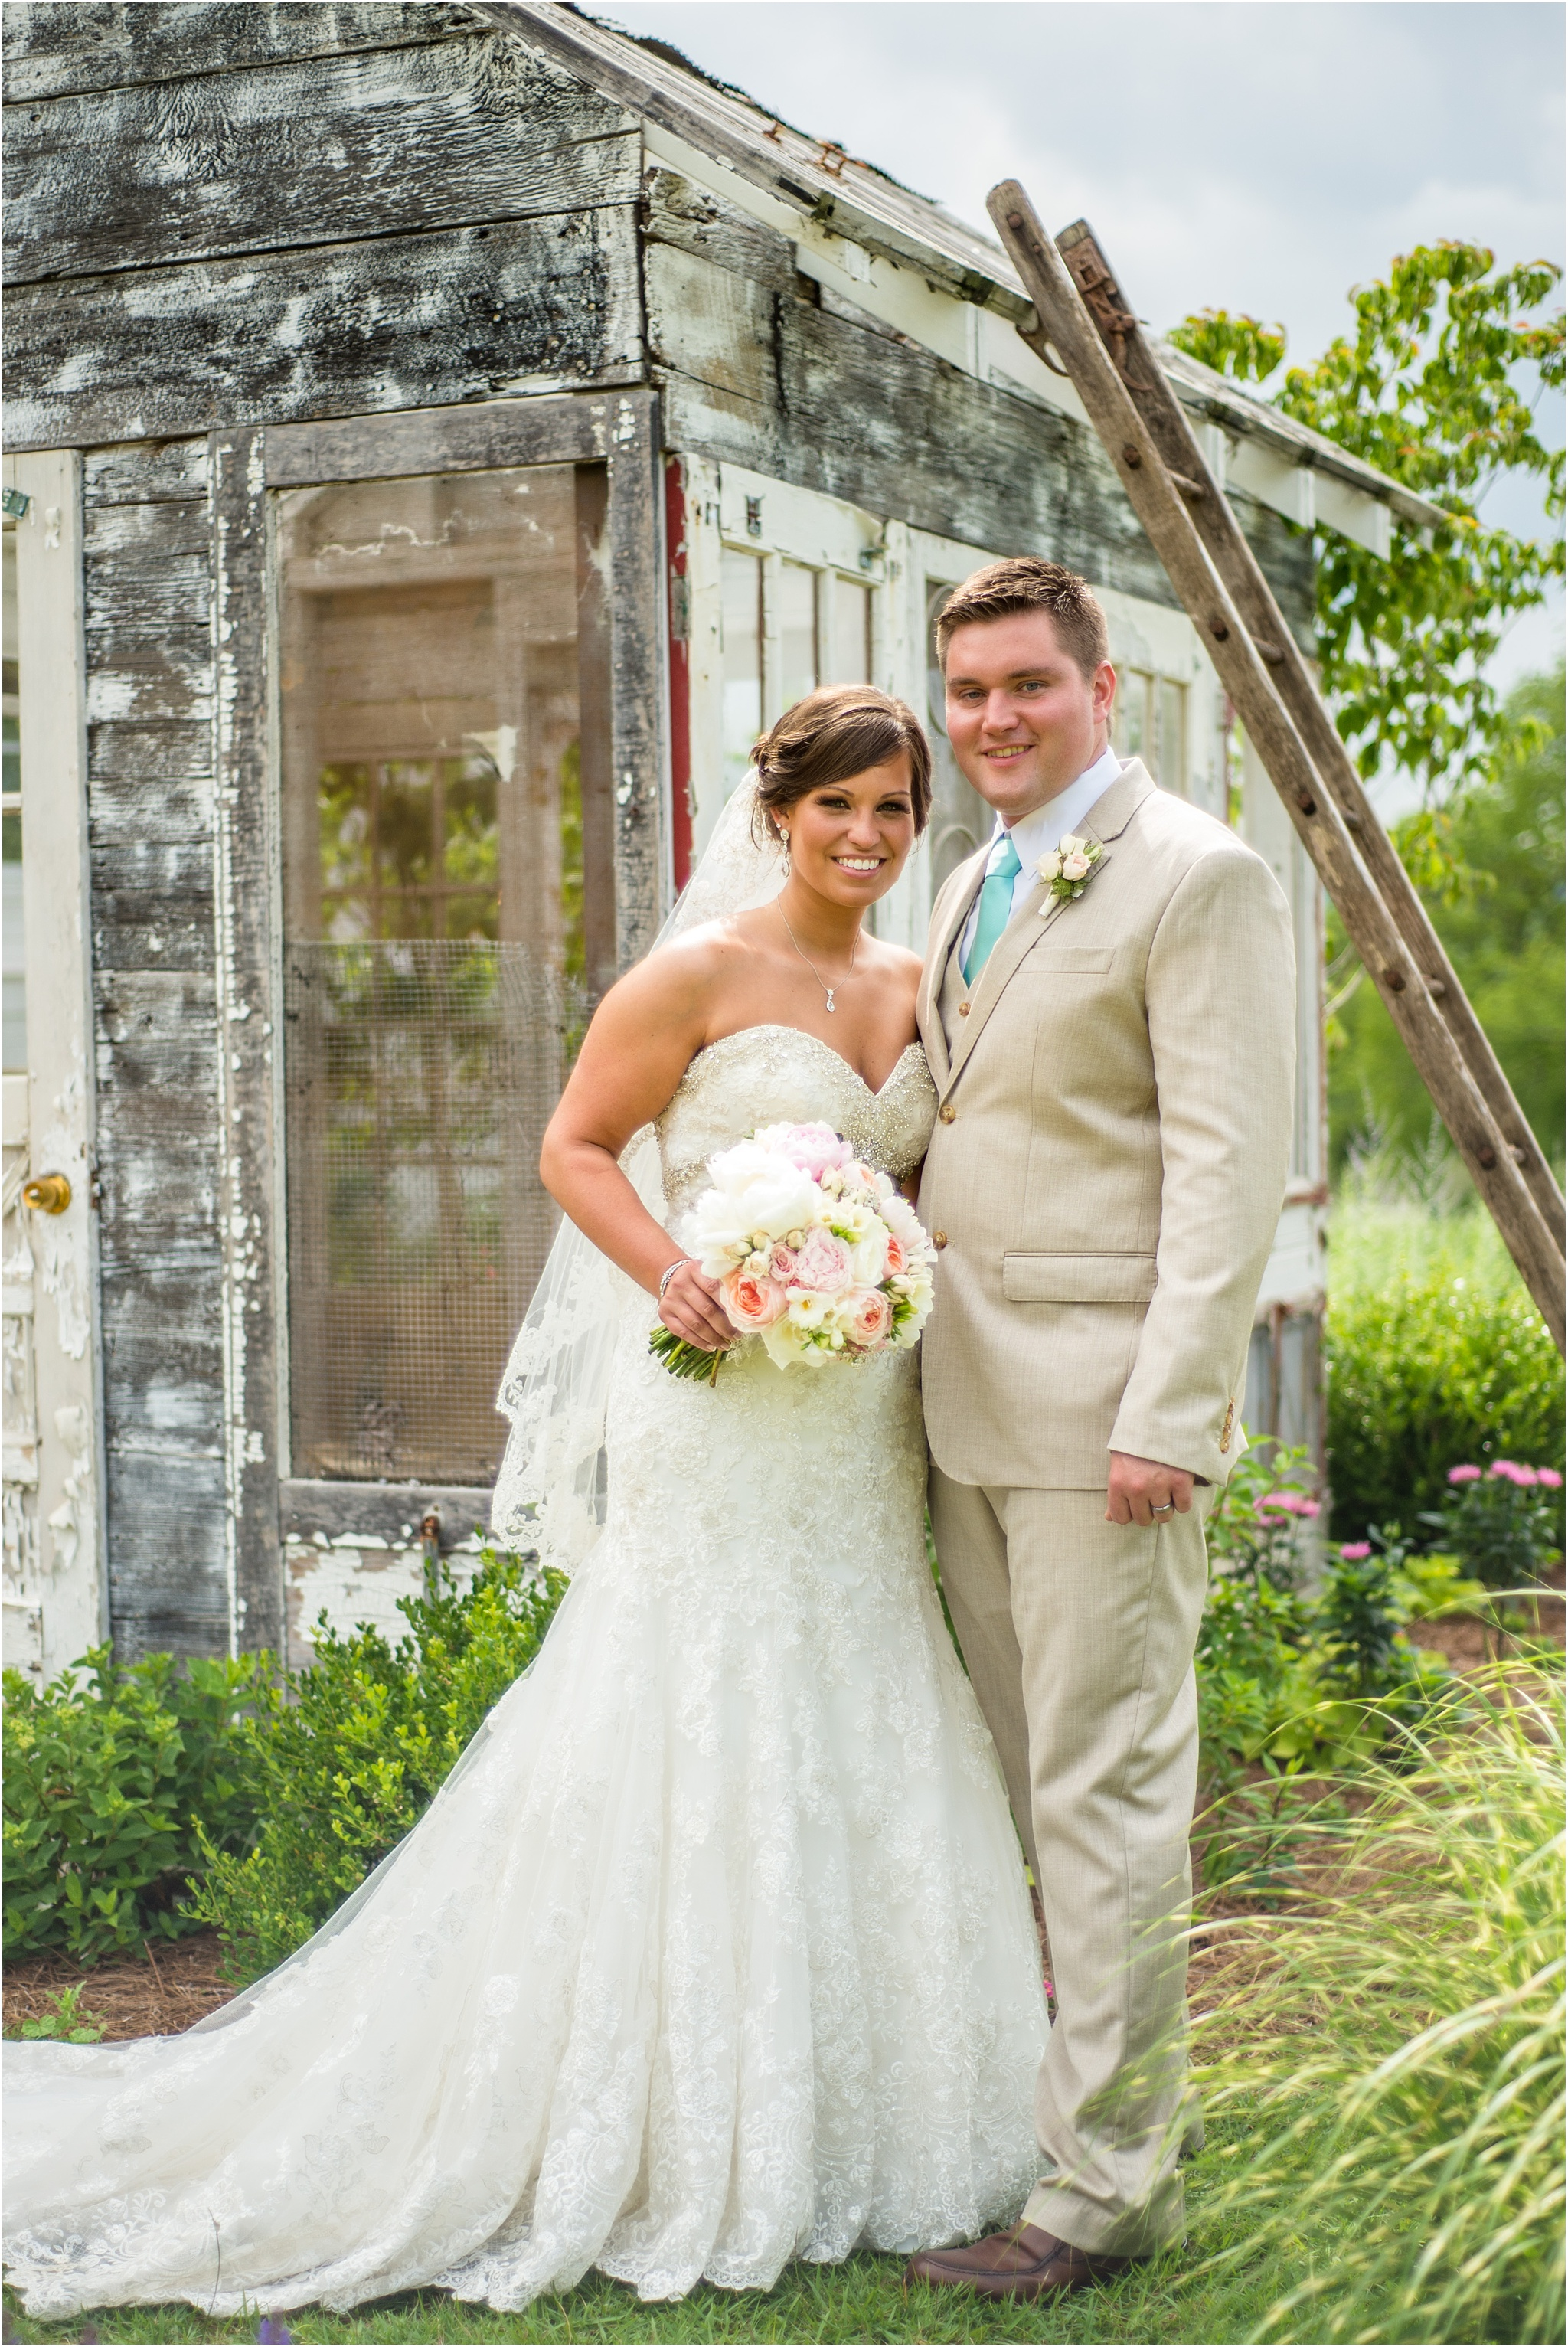 Greg Smit Photography Nashville wedding photographer Mint Springs Farm  14